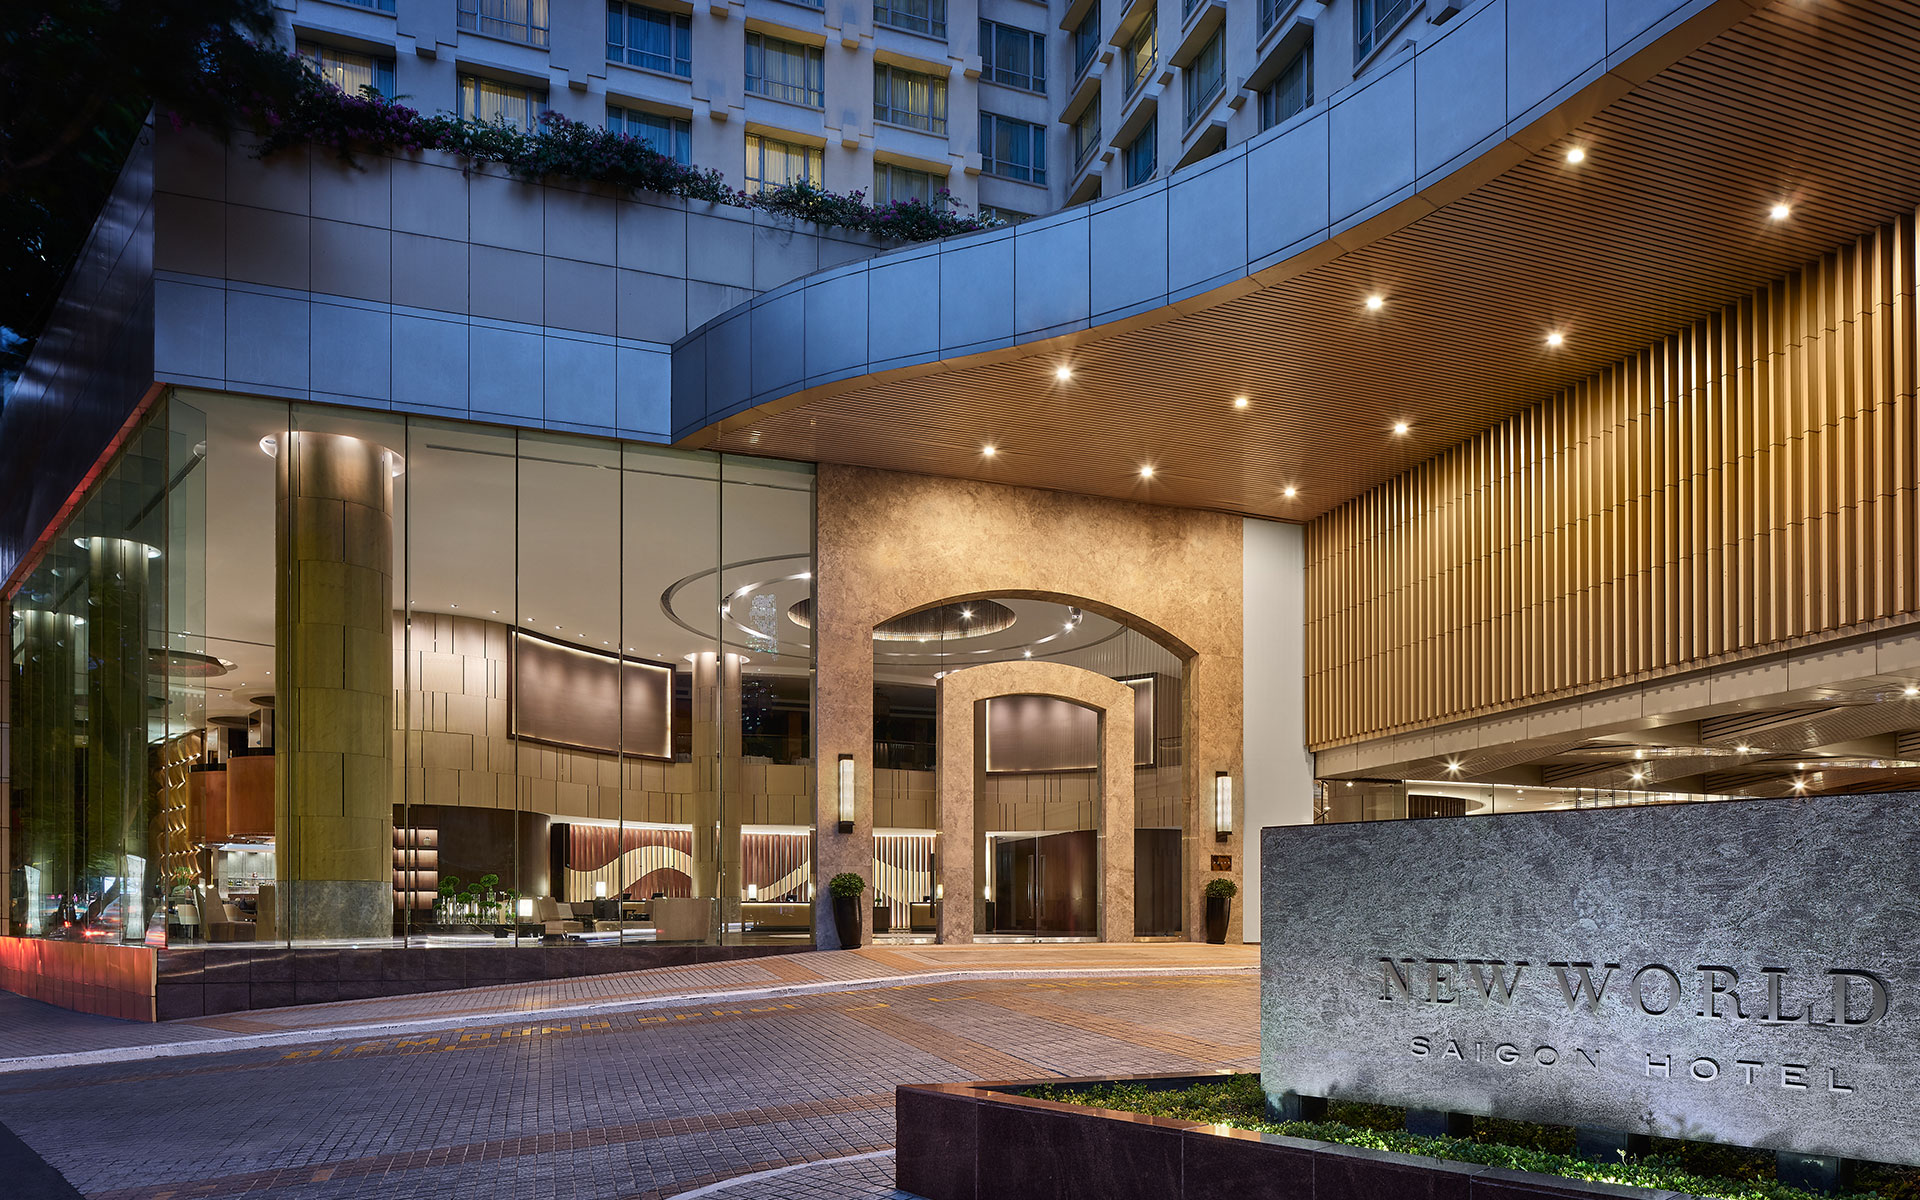 Spacious entrance and lobby of New World Saigon Hotel